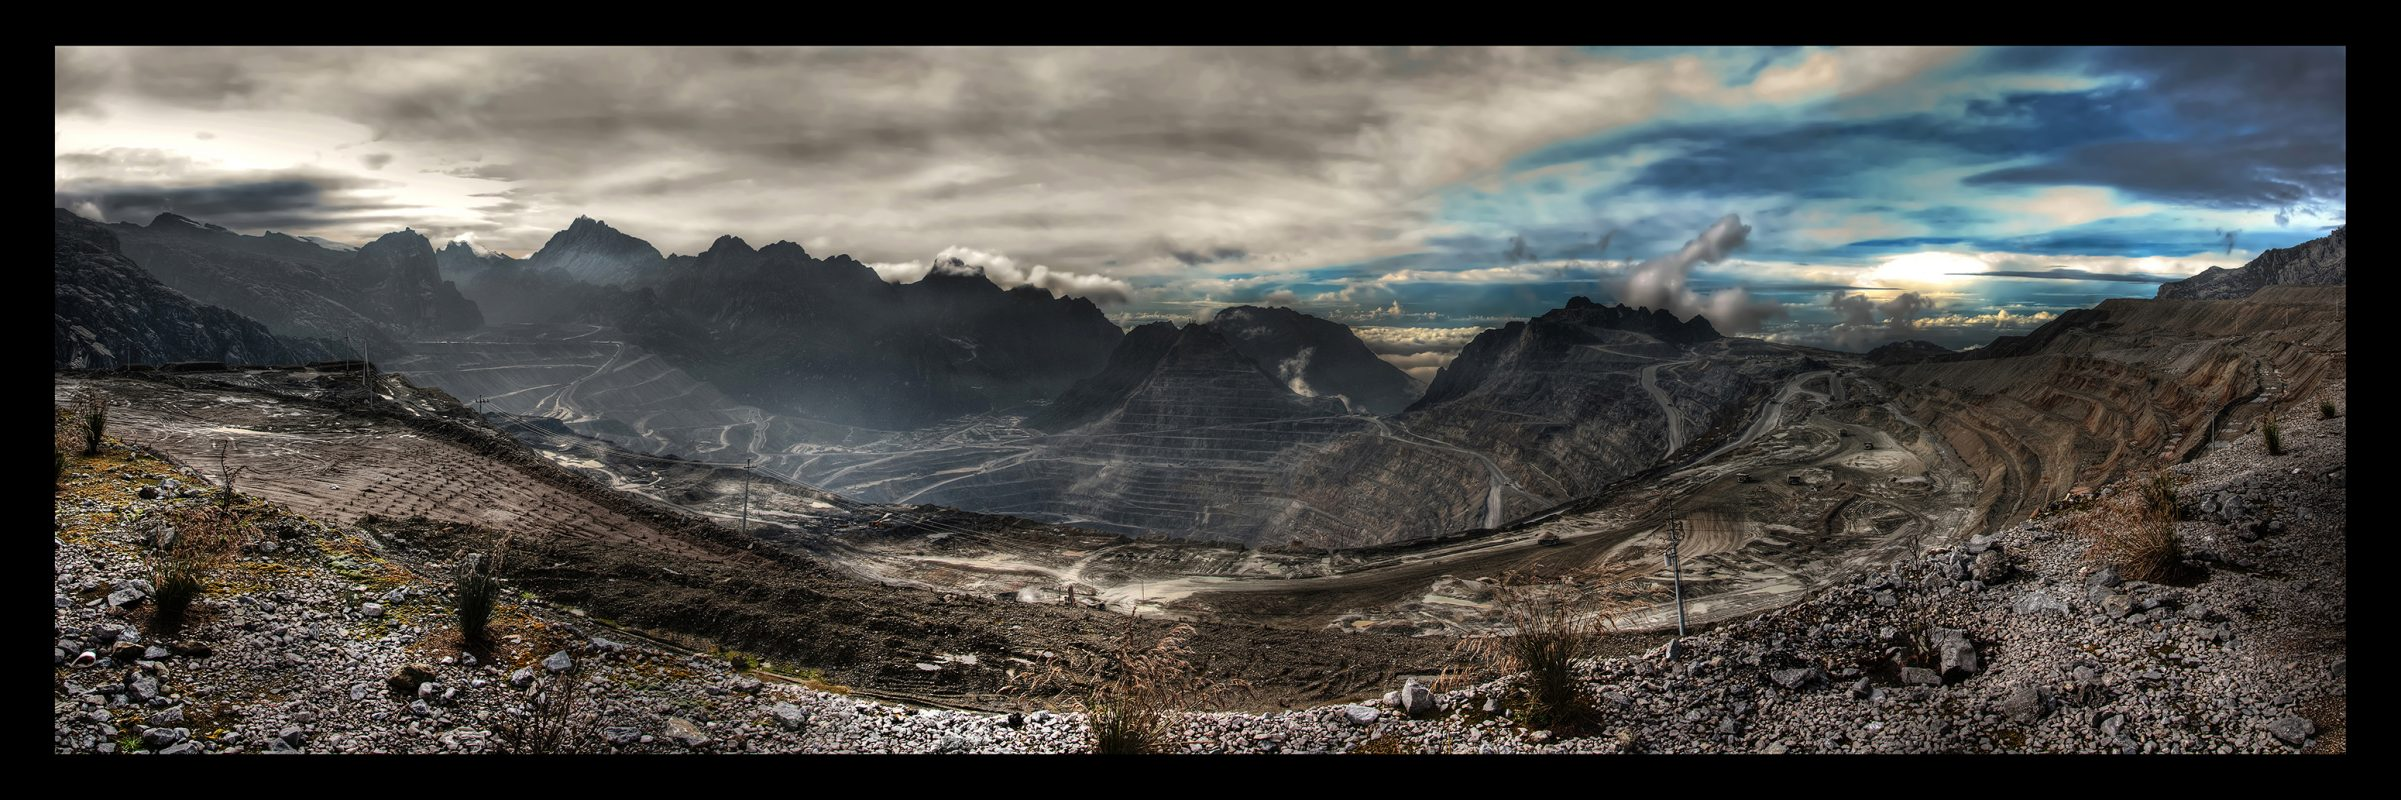 A panorama of the Grasberg gold and copper mine in Papua province, which activists point to as a case study of how extractive projects can go wrong. Credit: Richard Jones/Wikimedia Commons